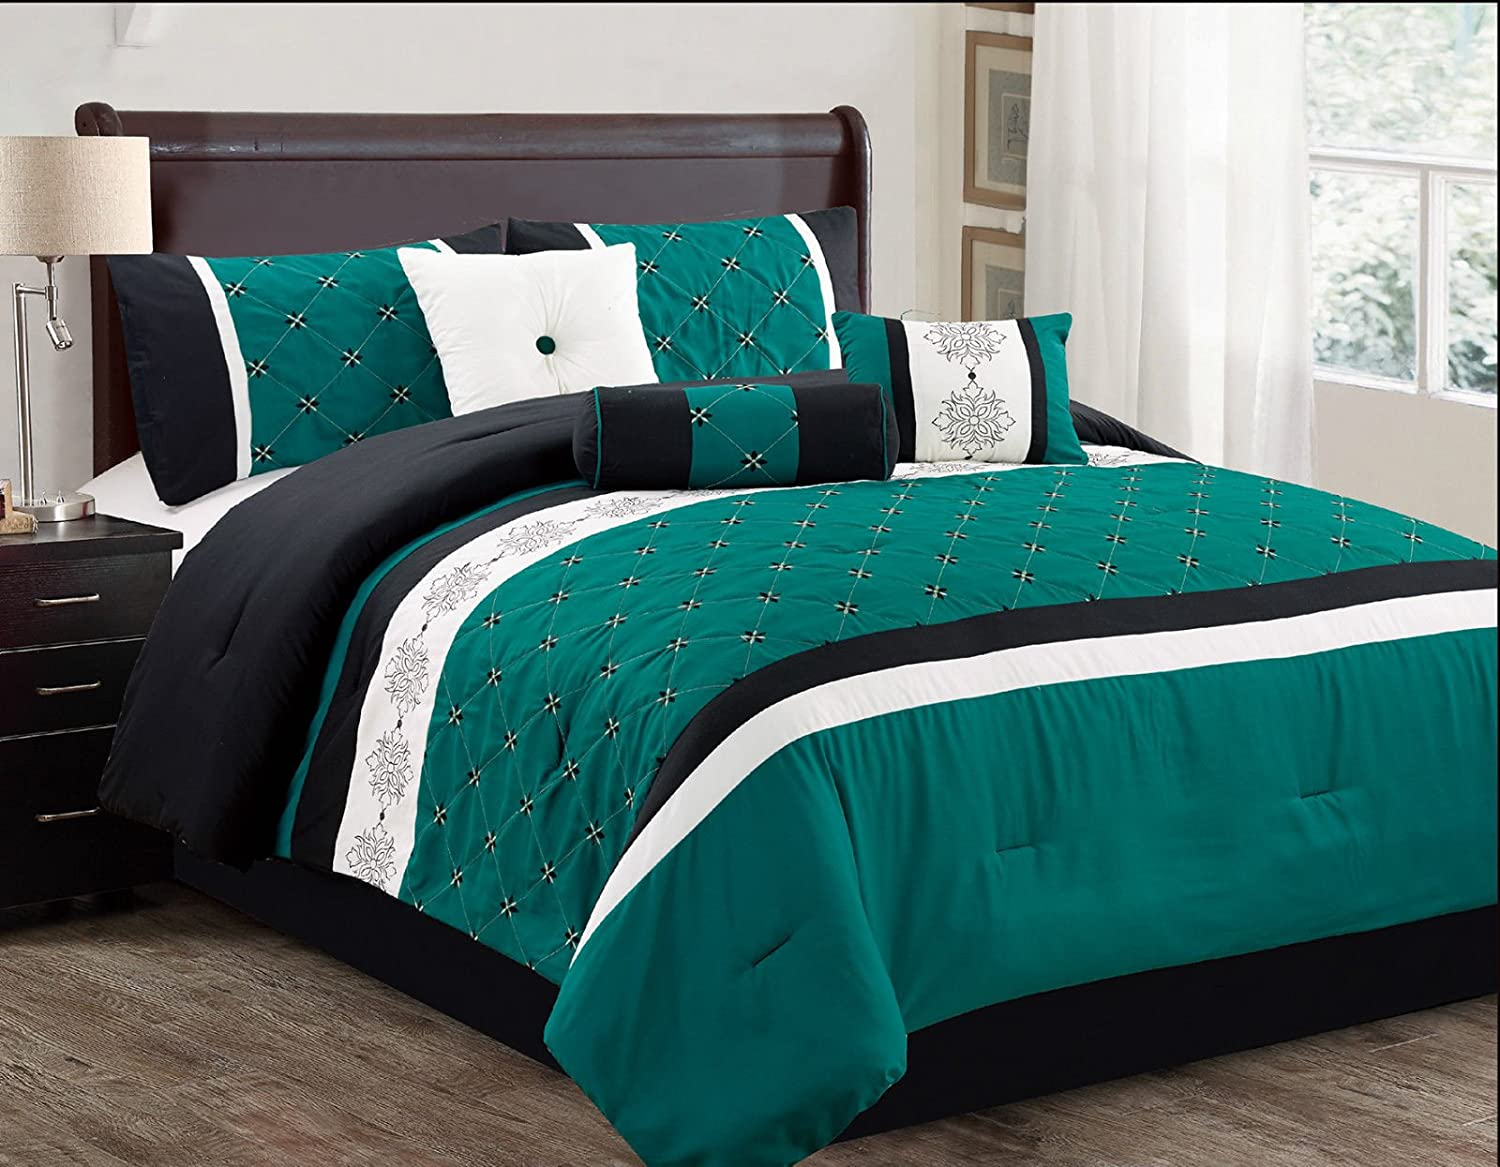 Sabrina 7 Piece Embroidered Comforter Set Teal & Black (King